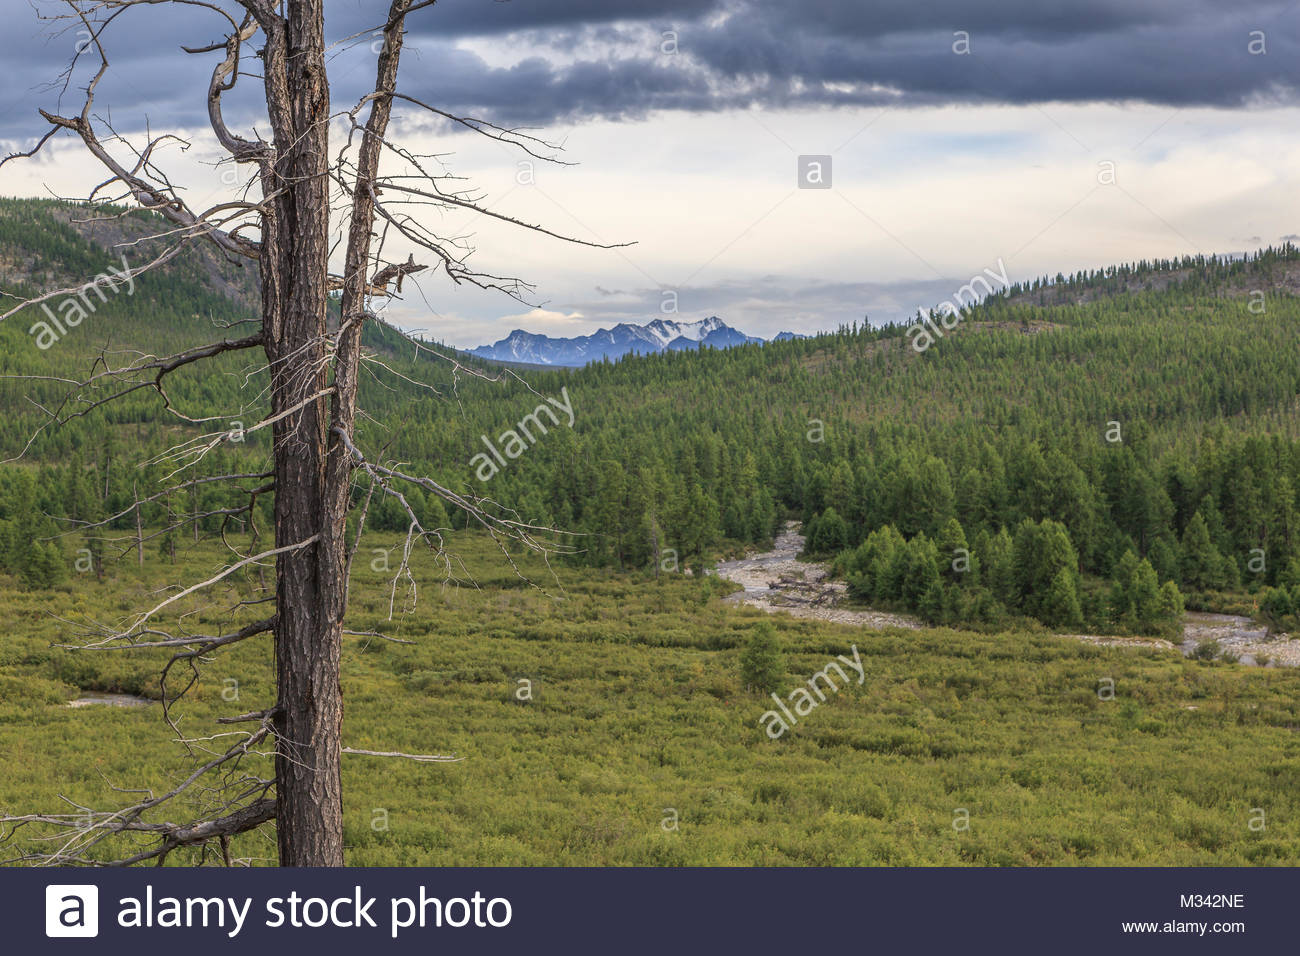 The dried up tree in mountains. - Stock Image